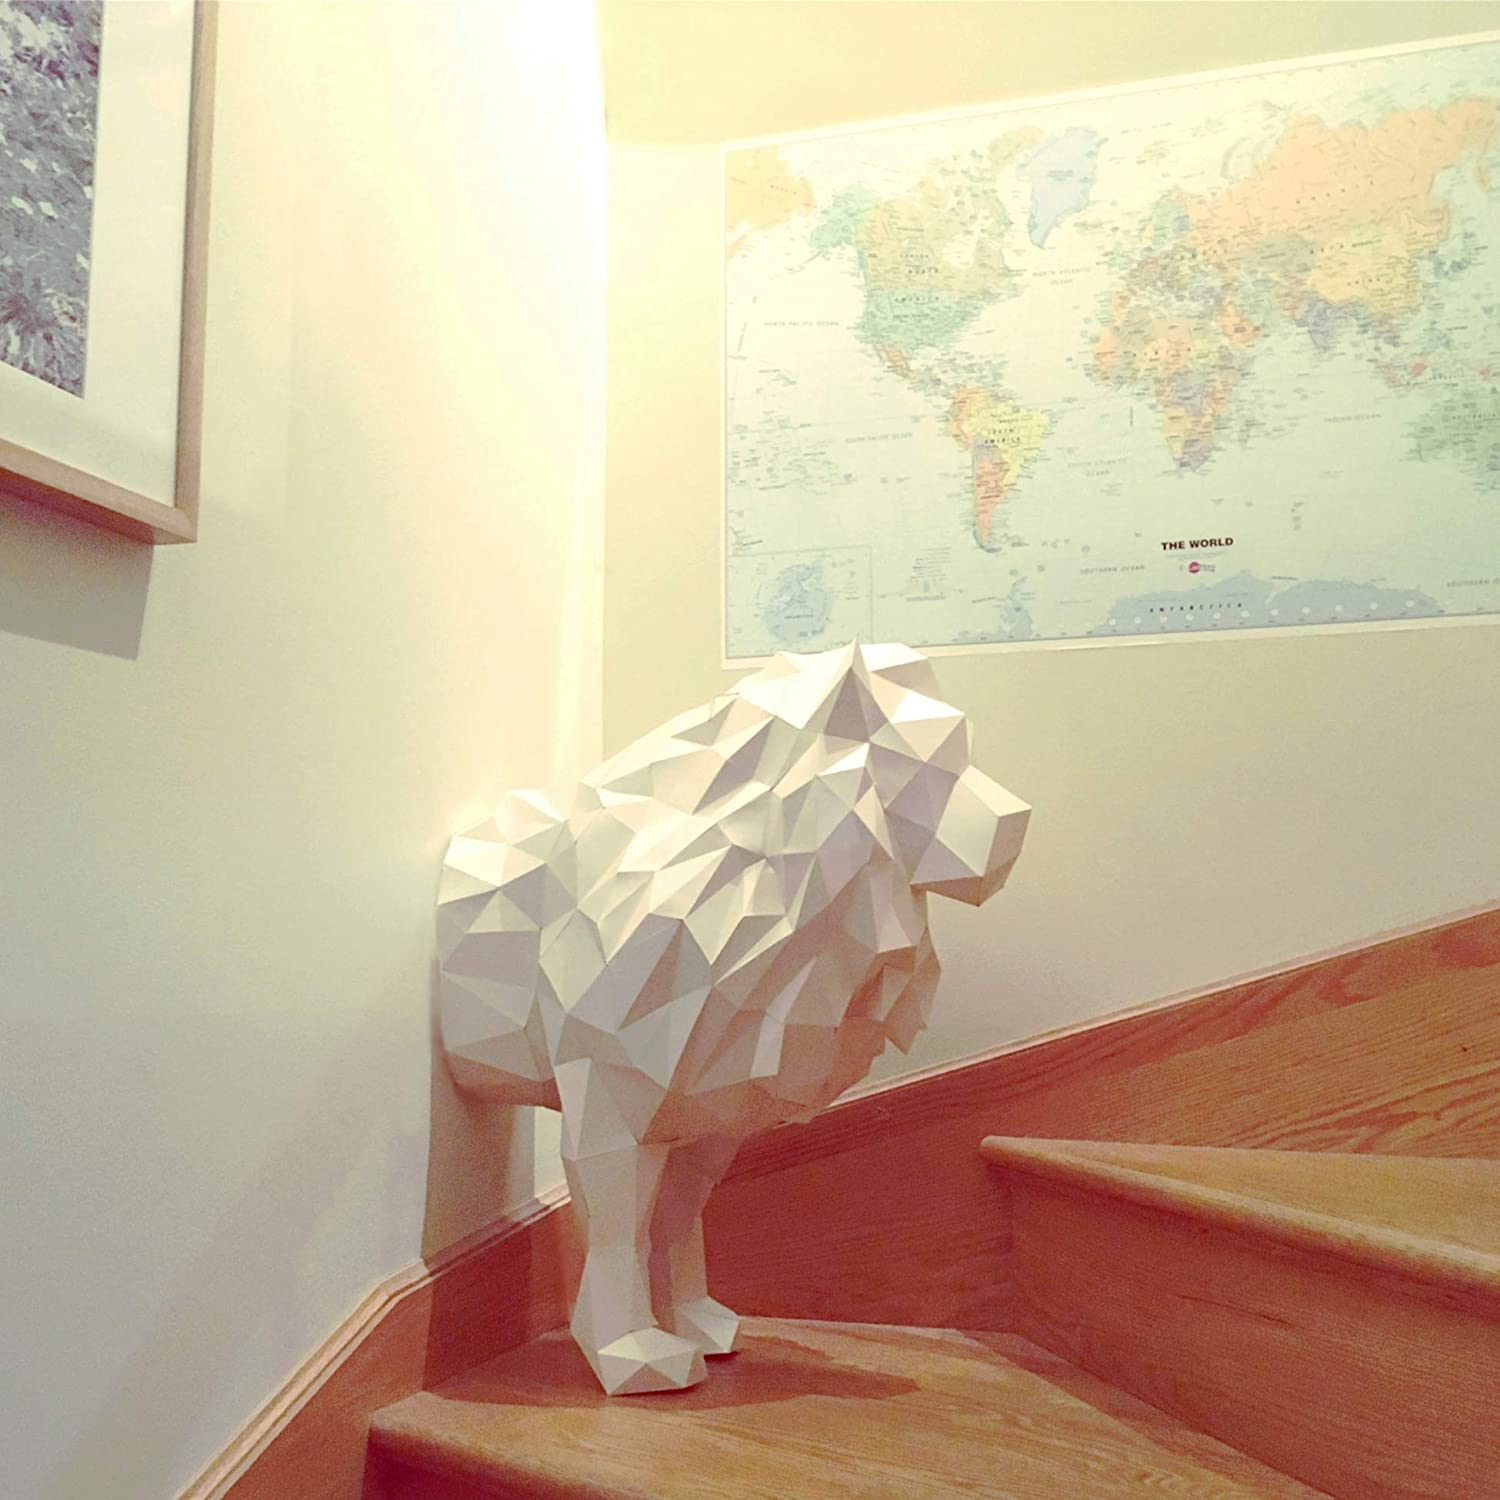 half LION 3d papercraft KIT. Kit contains card stock paper template for this DIY (do it yourself) paper sculpture.